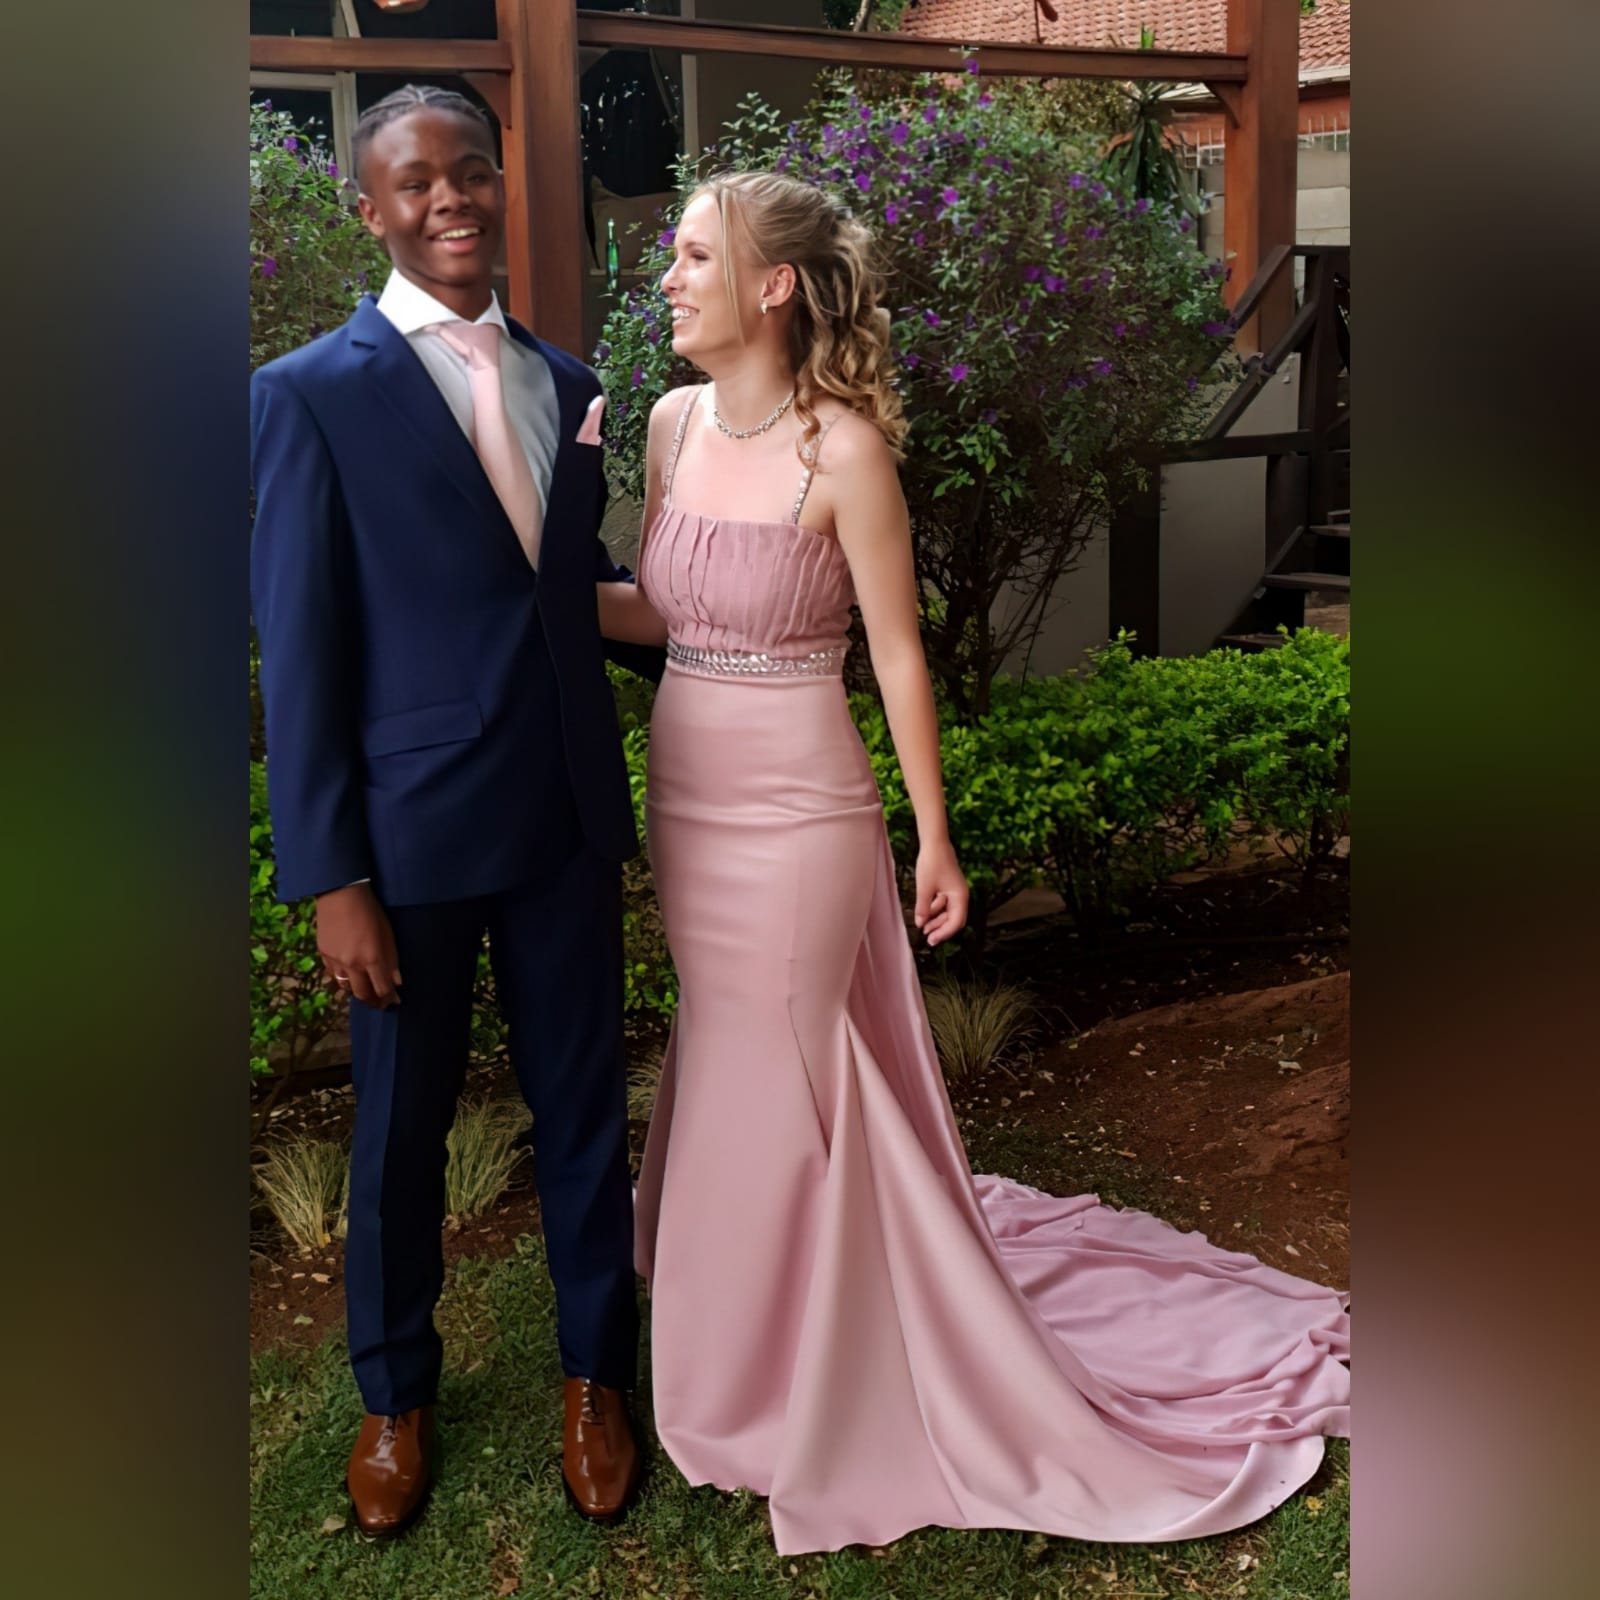 Dusty pink soft mermaid matric dress with a pleated bodice 9 dusty pink soft mermaid matric dress with a pleated bodice, with a train. Extra detachable chiffon train with a beaded belt and removable shoulder straps